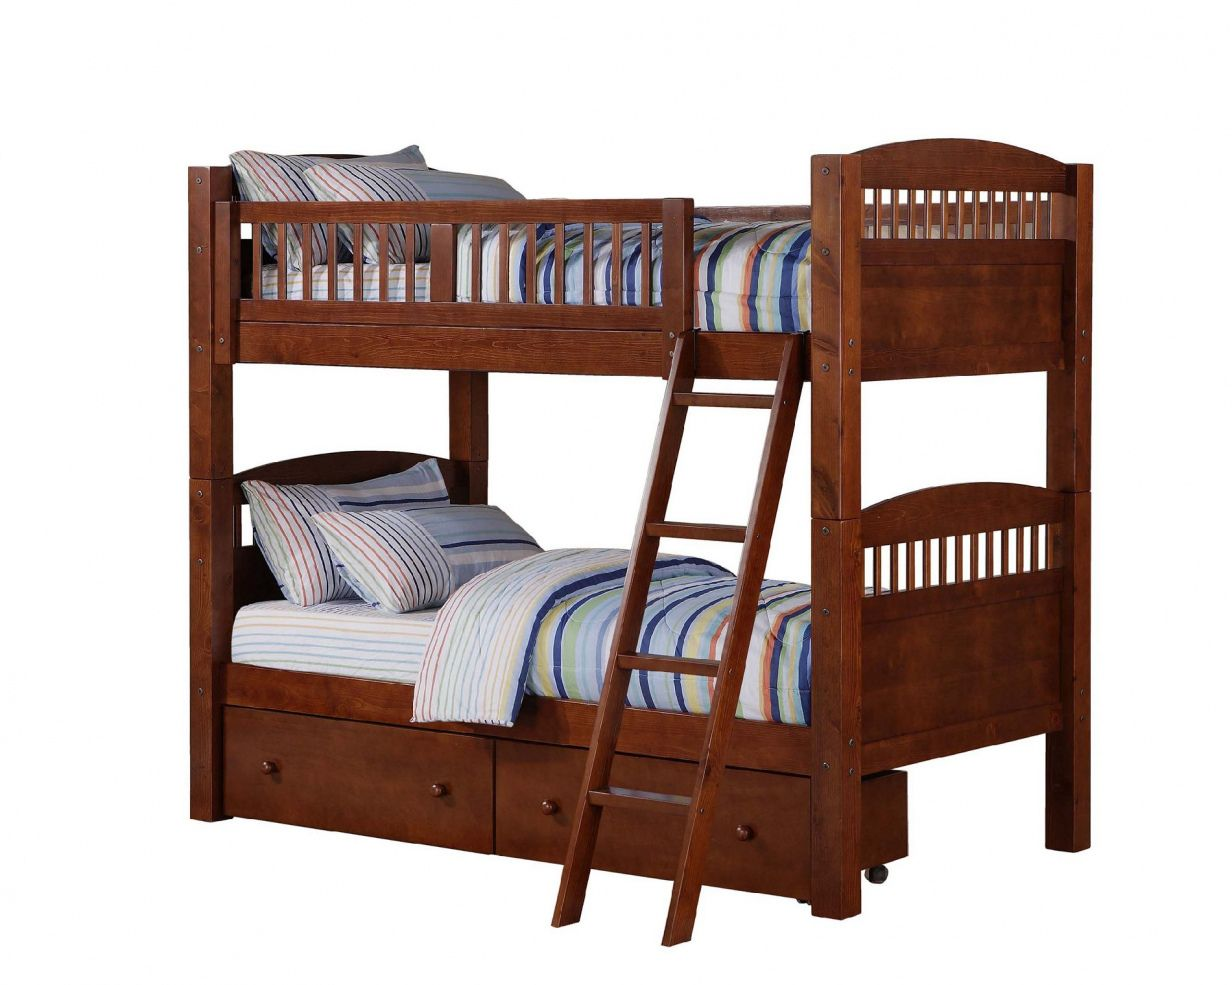 unique sears bunk beds for sale check more at http dust war com